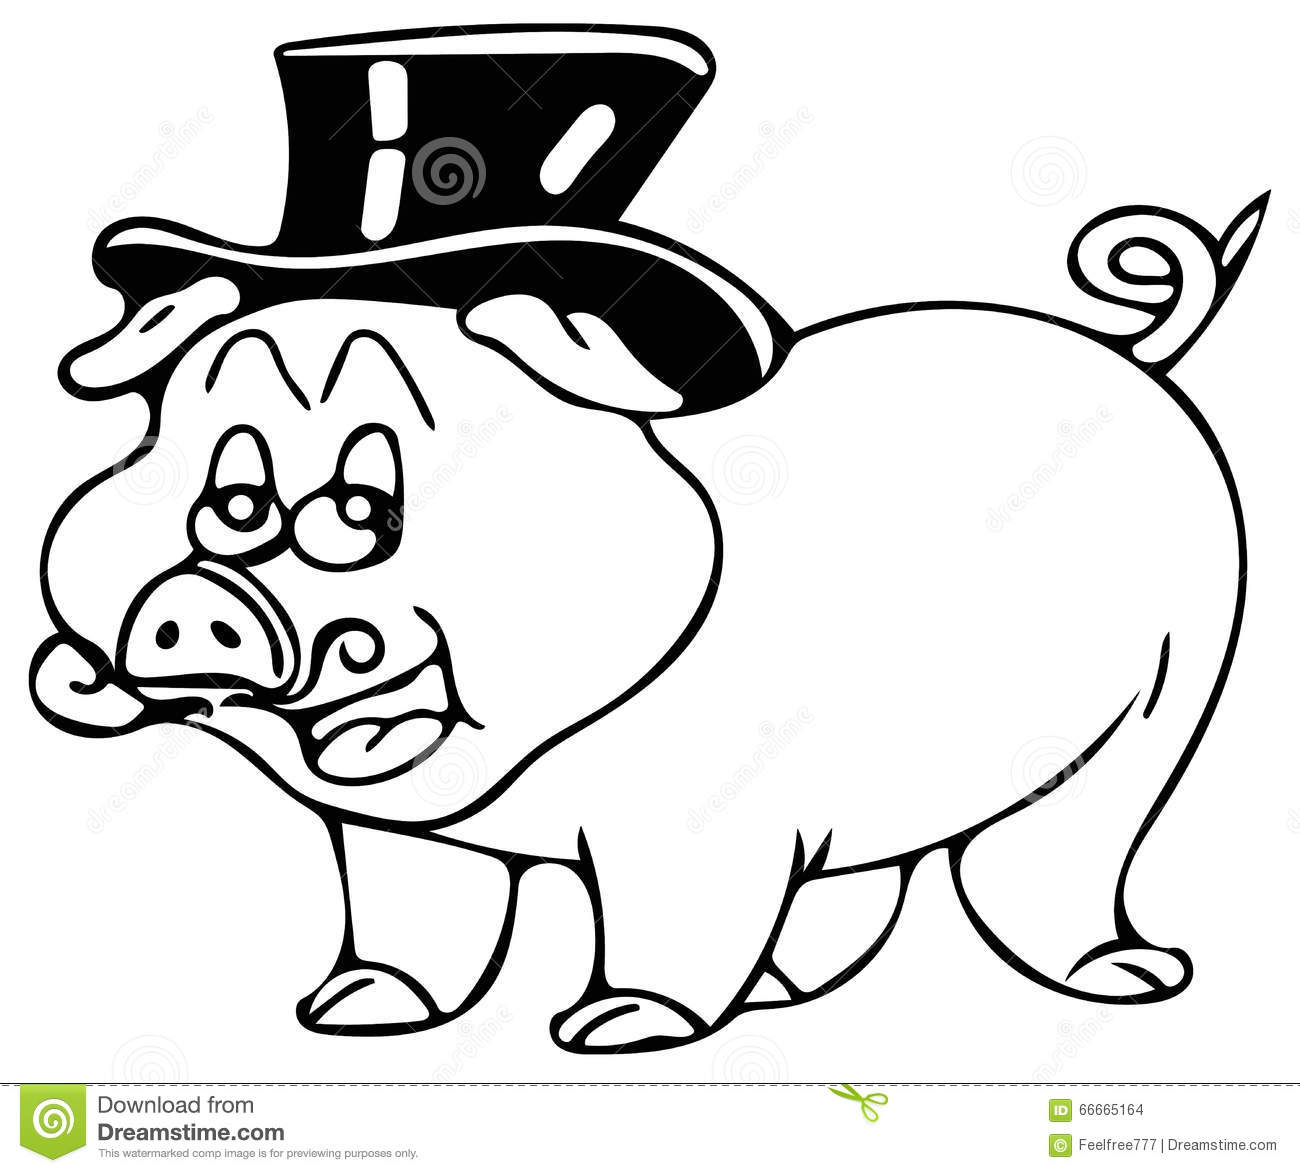 Smart Pig Coloring Pages